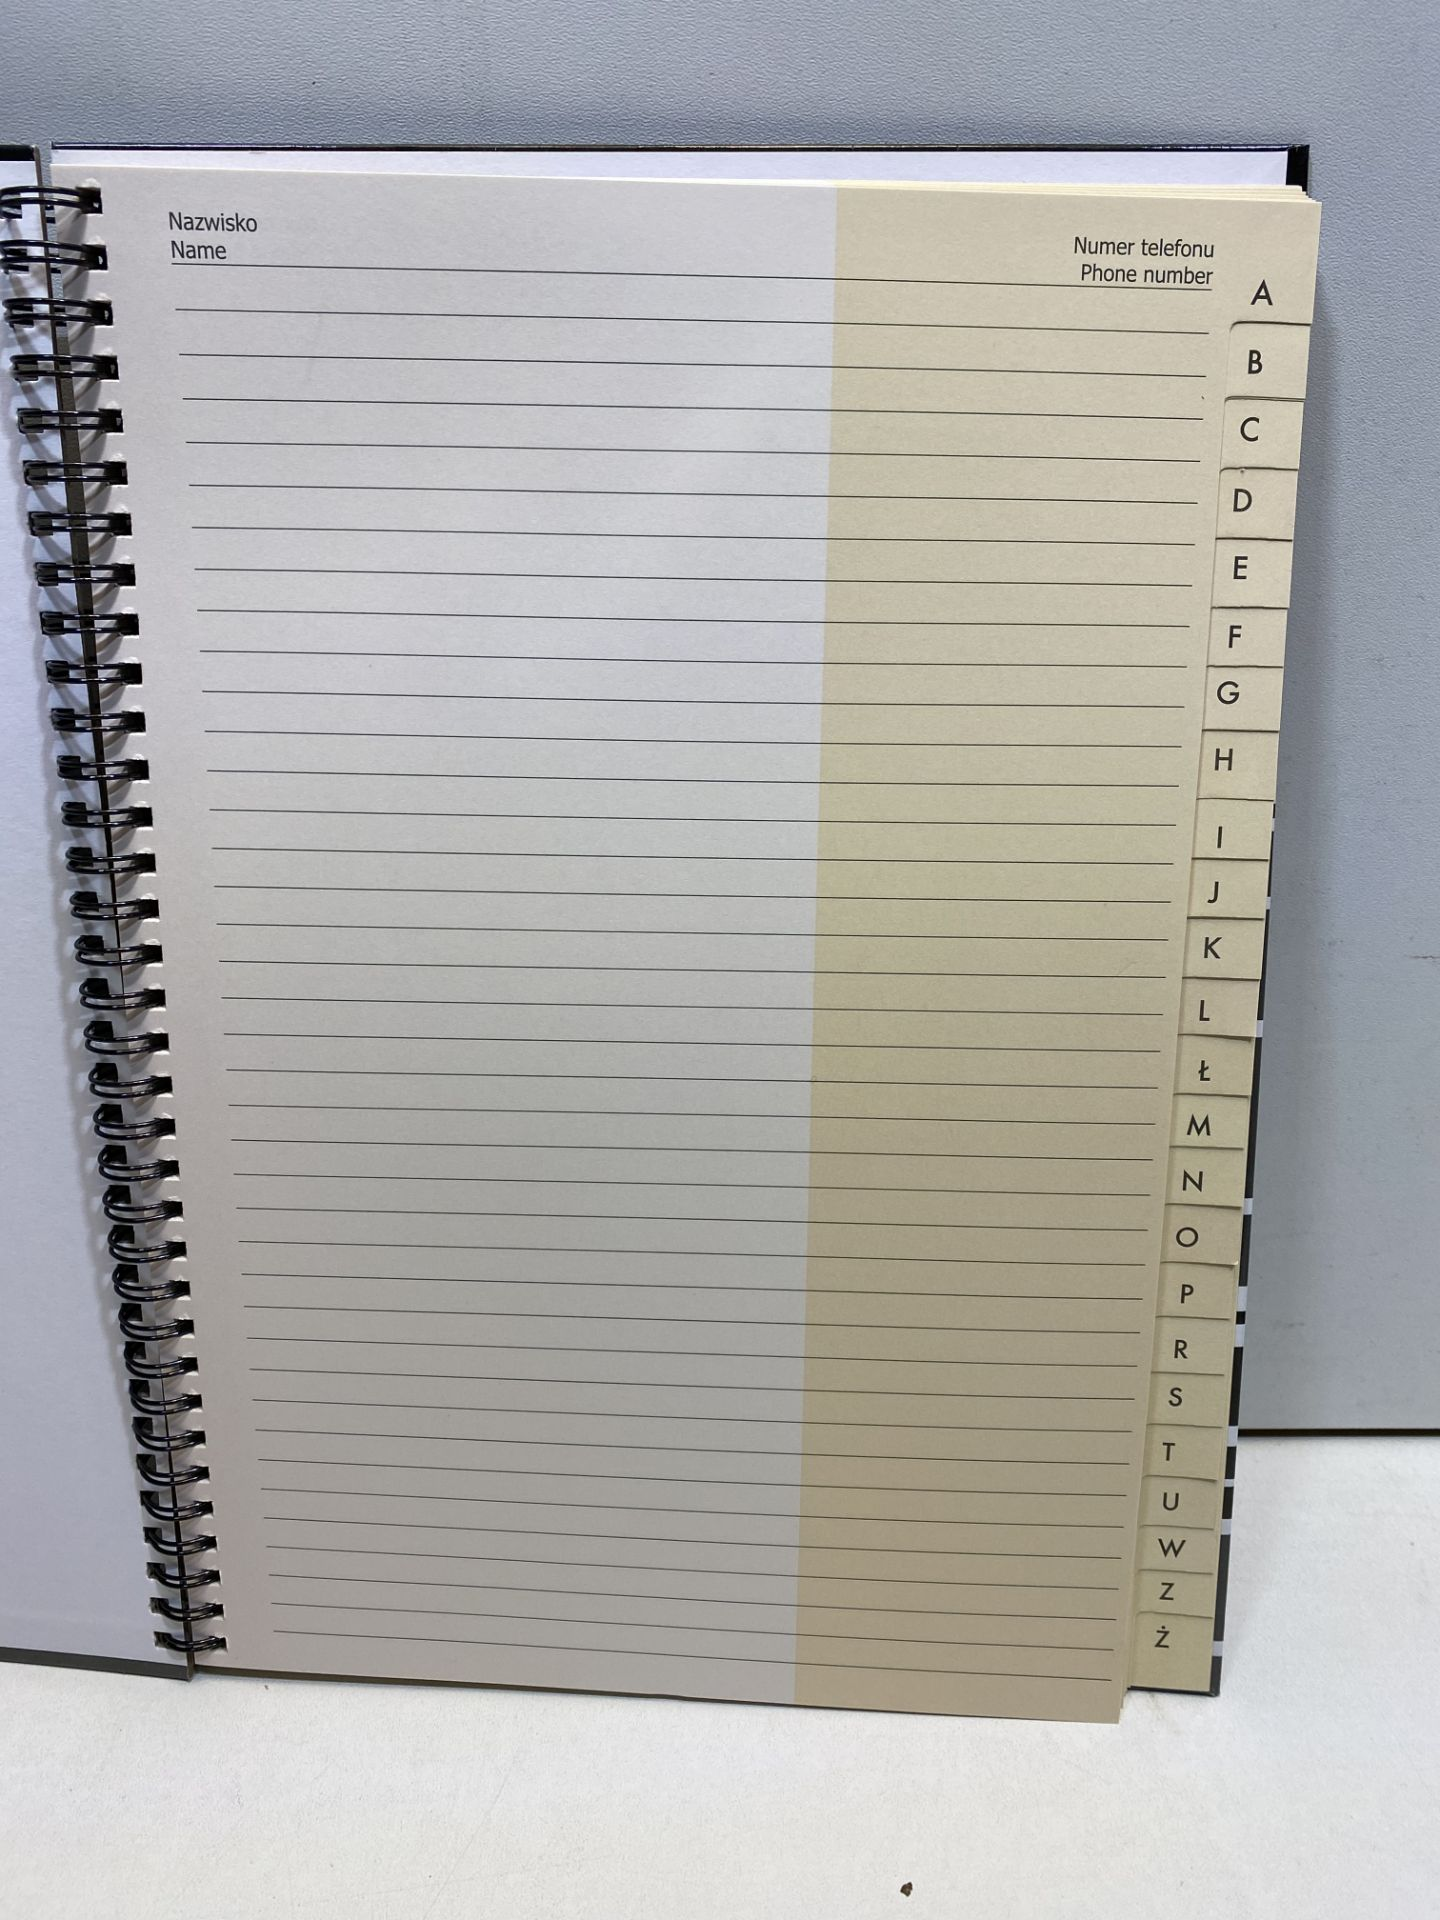 7 x Various A4 Address & Phone A-Z Notepads | 5902277171108 - Image 4 of 7